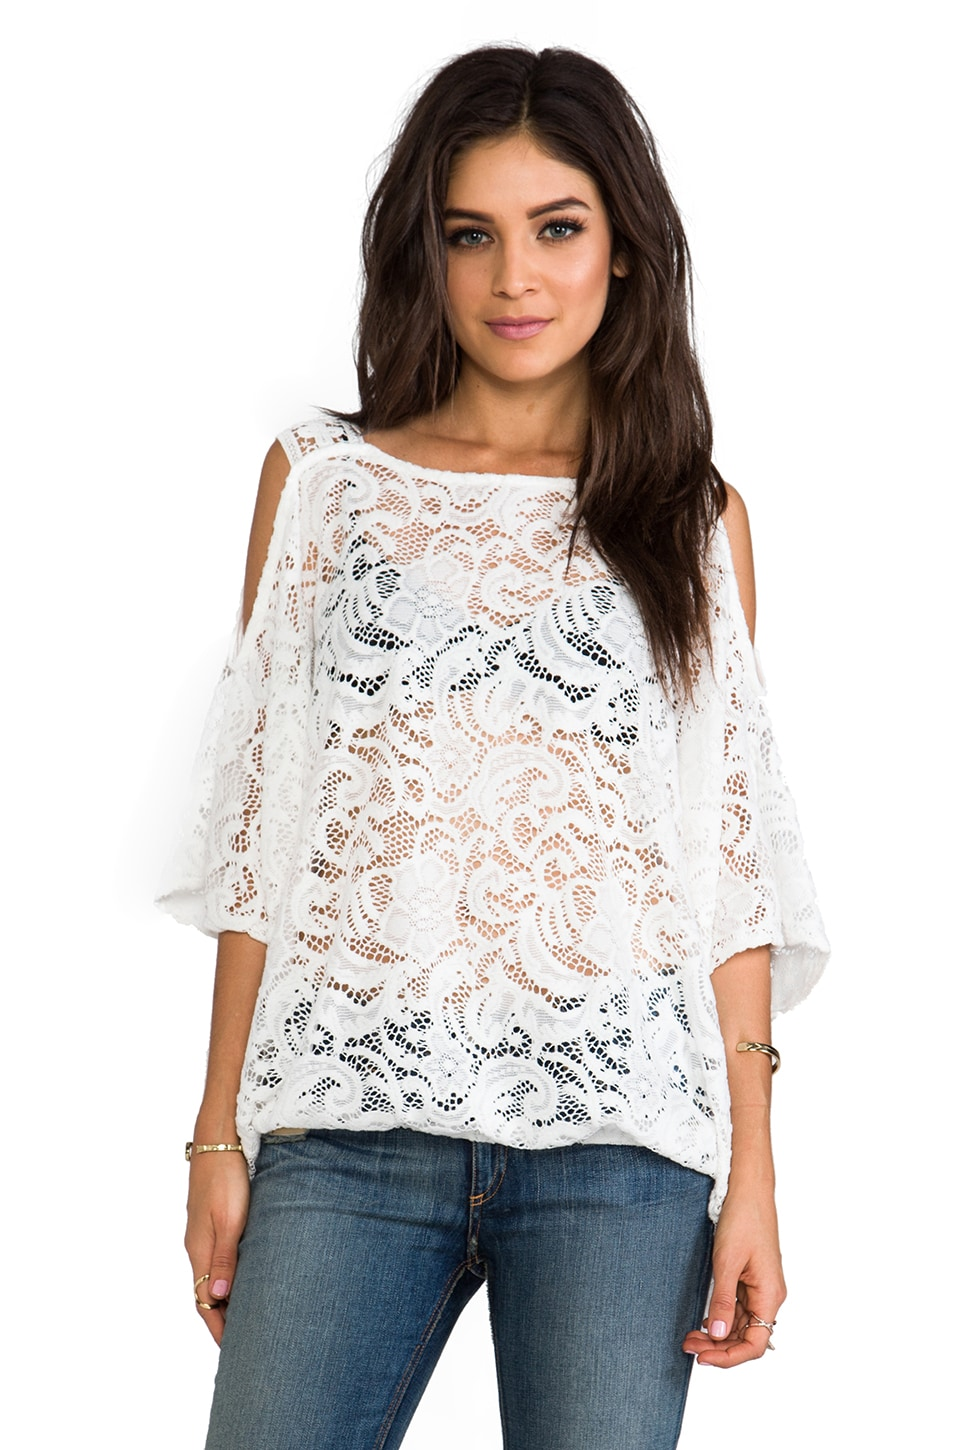 VAVA by Joy Han Valerie Shoulder Strap Top in White